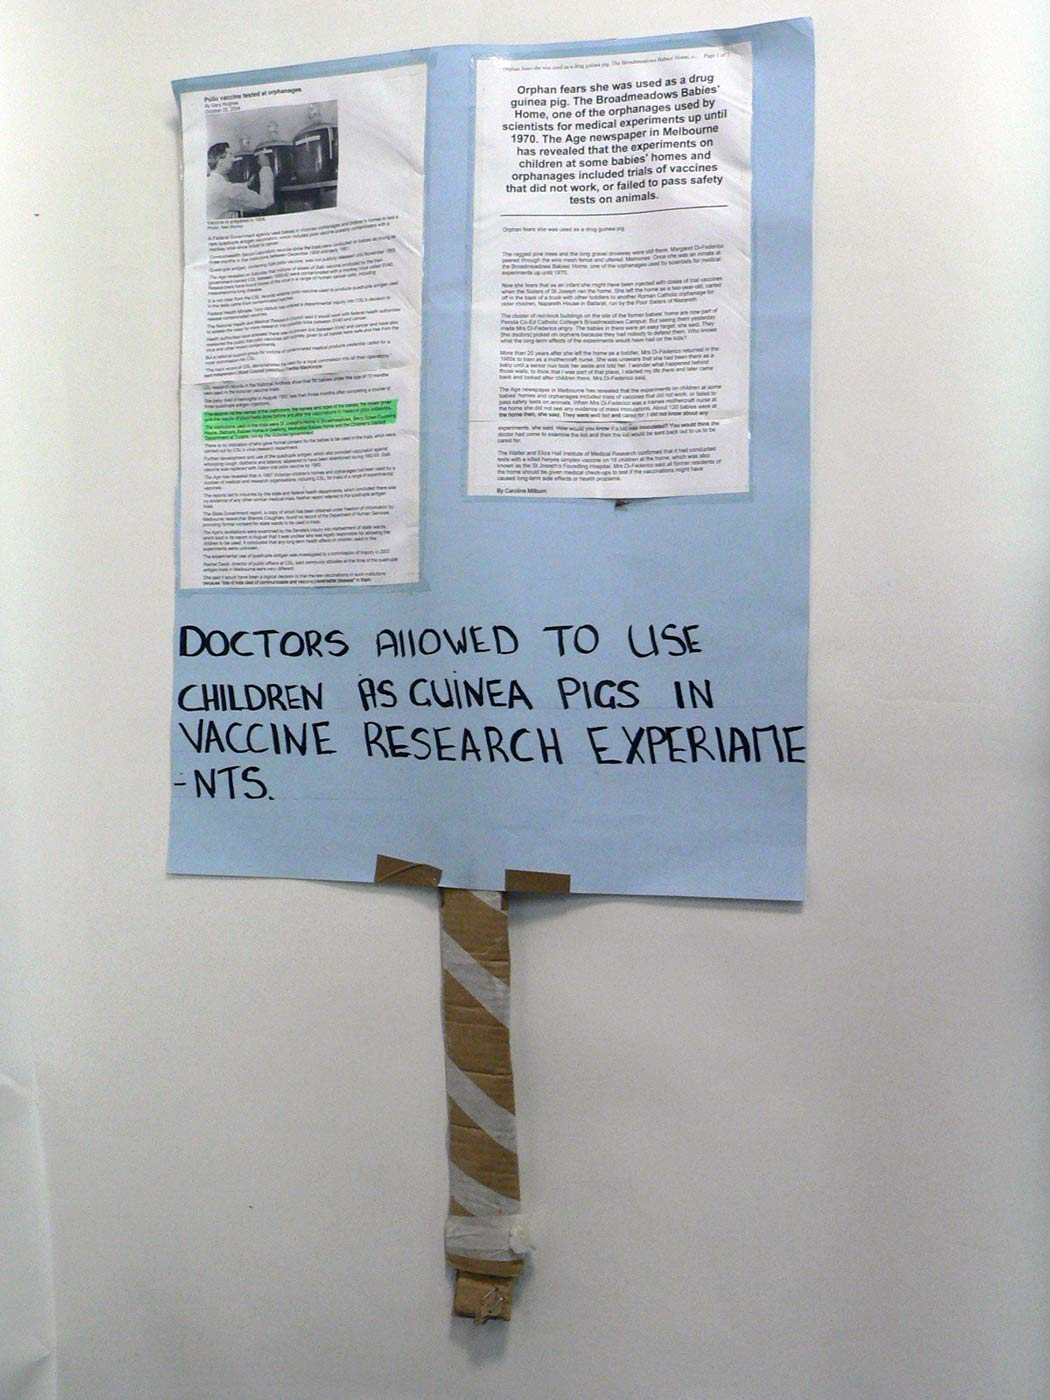 A placard made of a piece of pale blue cardboard with two computer printouts attached. Handwritten text across the bottom reads: 'DOCTORS ALLOWED TO USE CHILDREN AS GUINEA PIGS IN VACCINE RESEARCH EXPERIAMENTS.' The placard is attached to a piece of rolled brown cardboard with masking tape wrapped around it. - click to view larger image